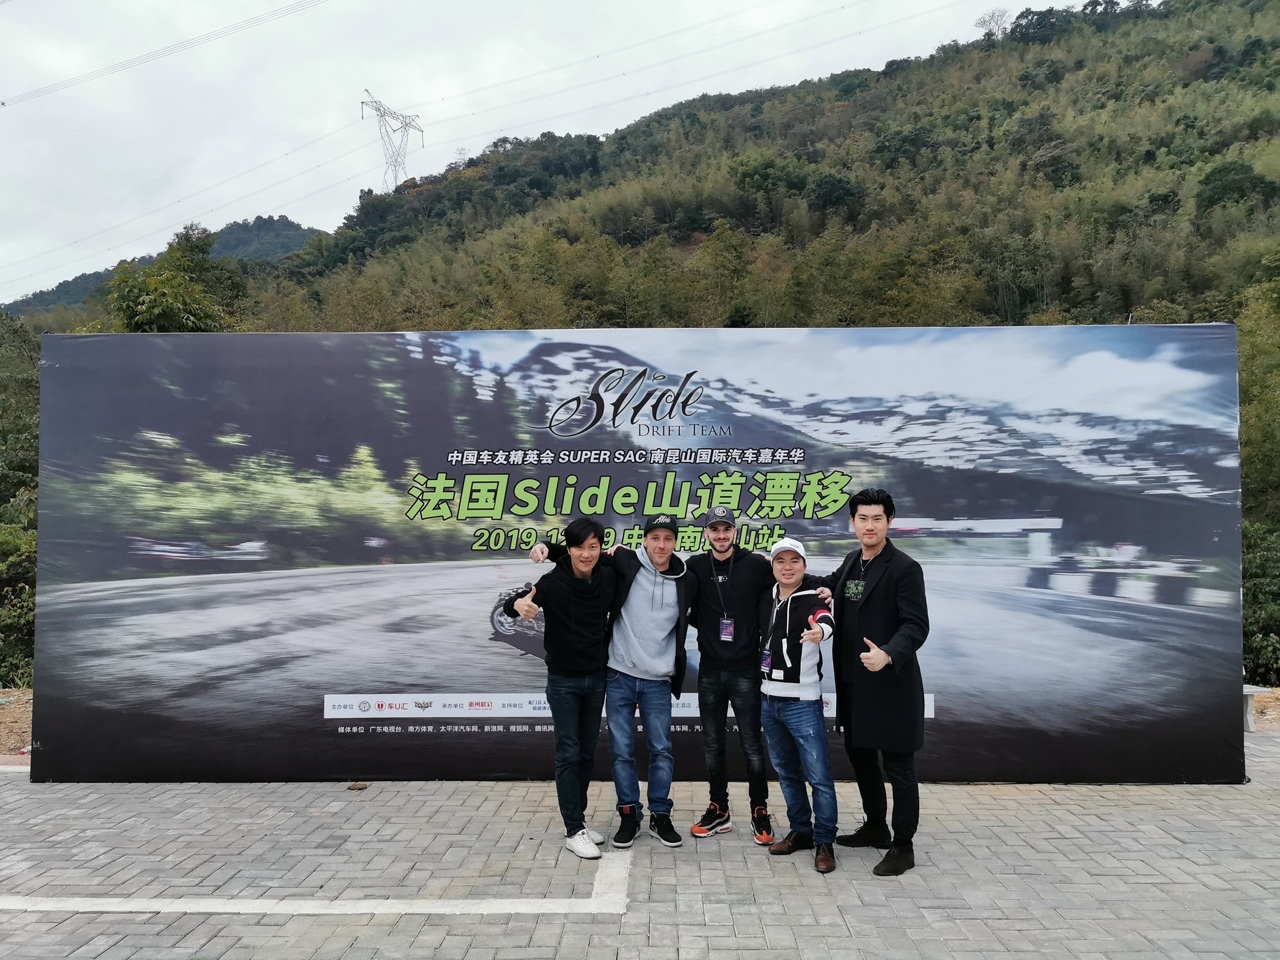 Mountain drift in China - Quand la Slide part en voyage ! 7